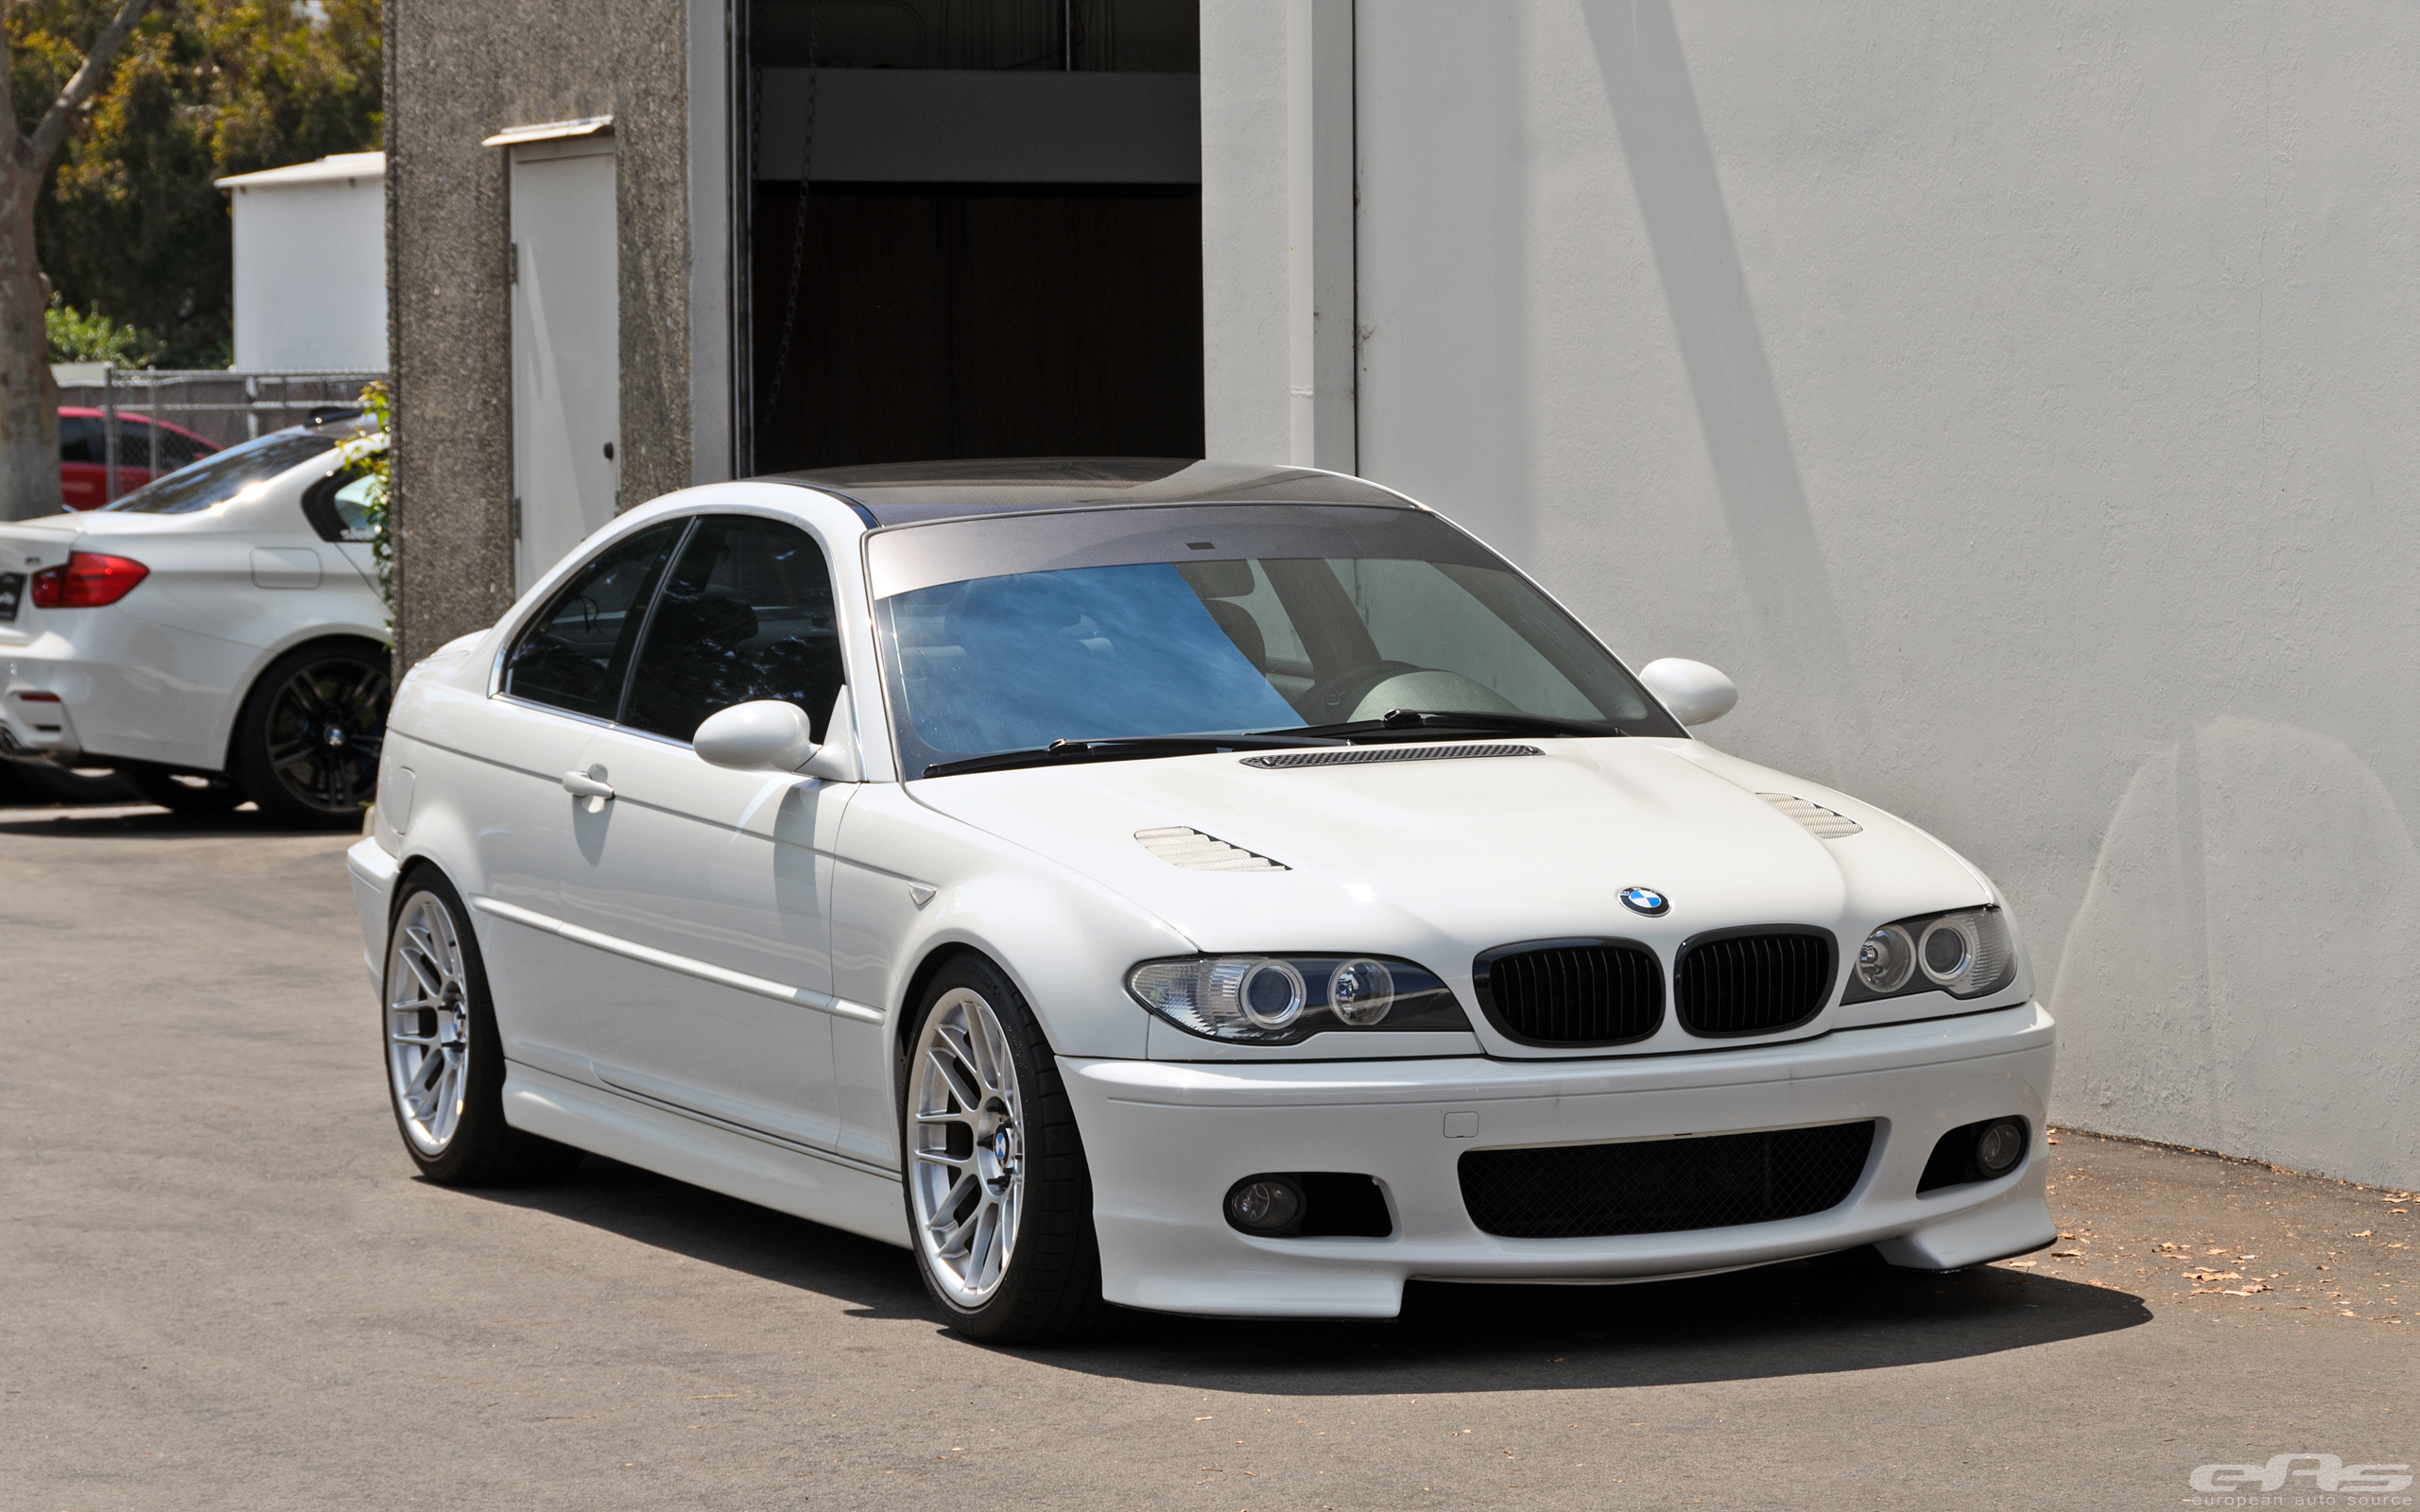 Alpine-White-BMW-E46-330Ci-Tuning-Build-11